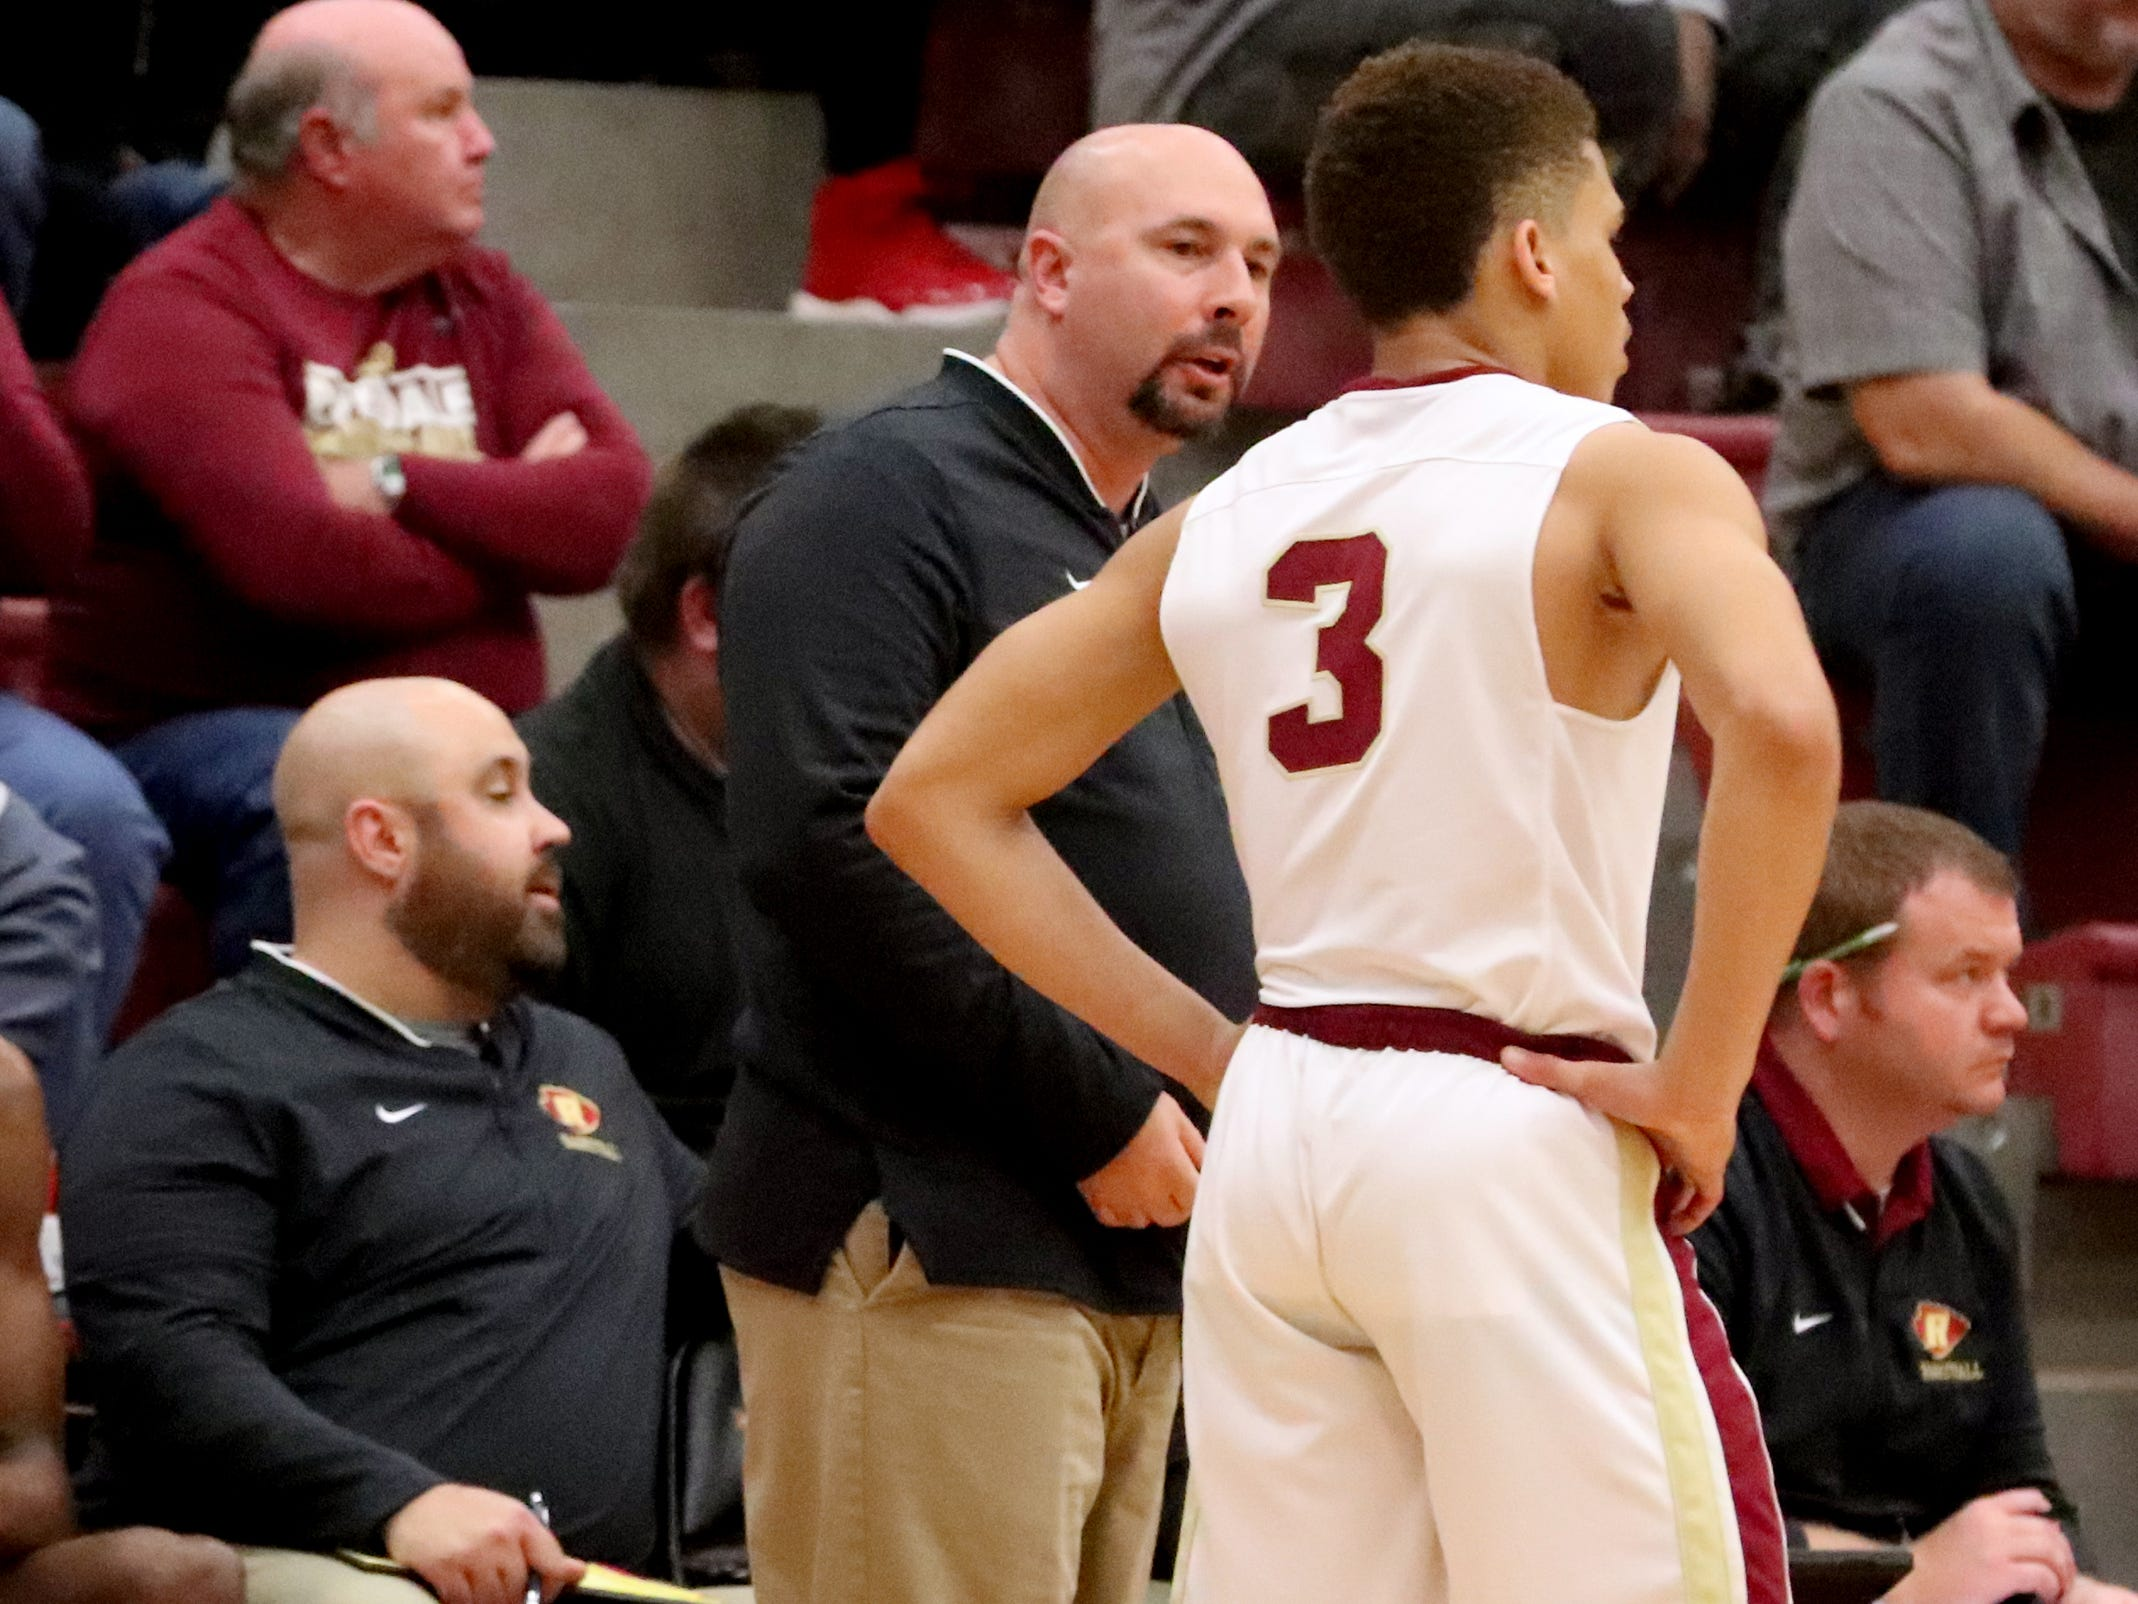 RiverdaleÕs Boys Head Coach Michael Voss talks with CJ Johnson (3) during the game against Lebanon at Riverdale on Friday, Nov. 30, 2018.